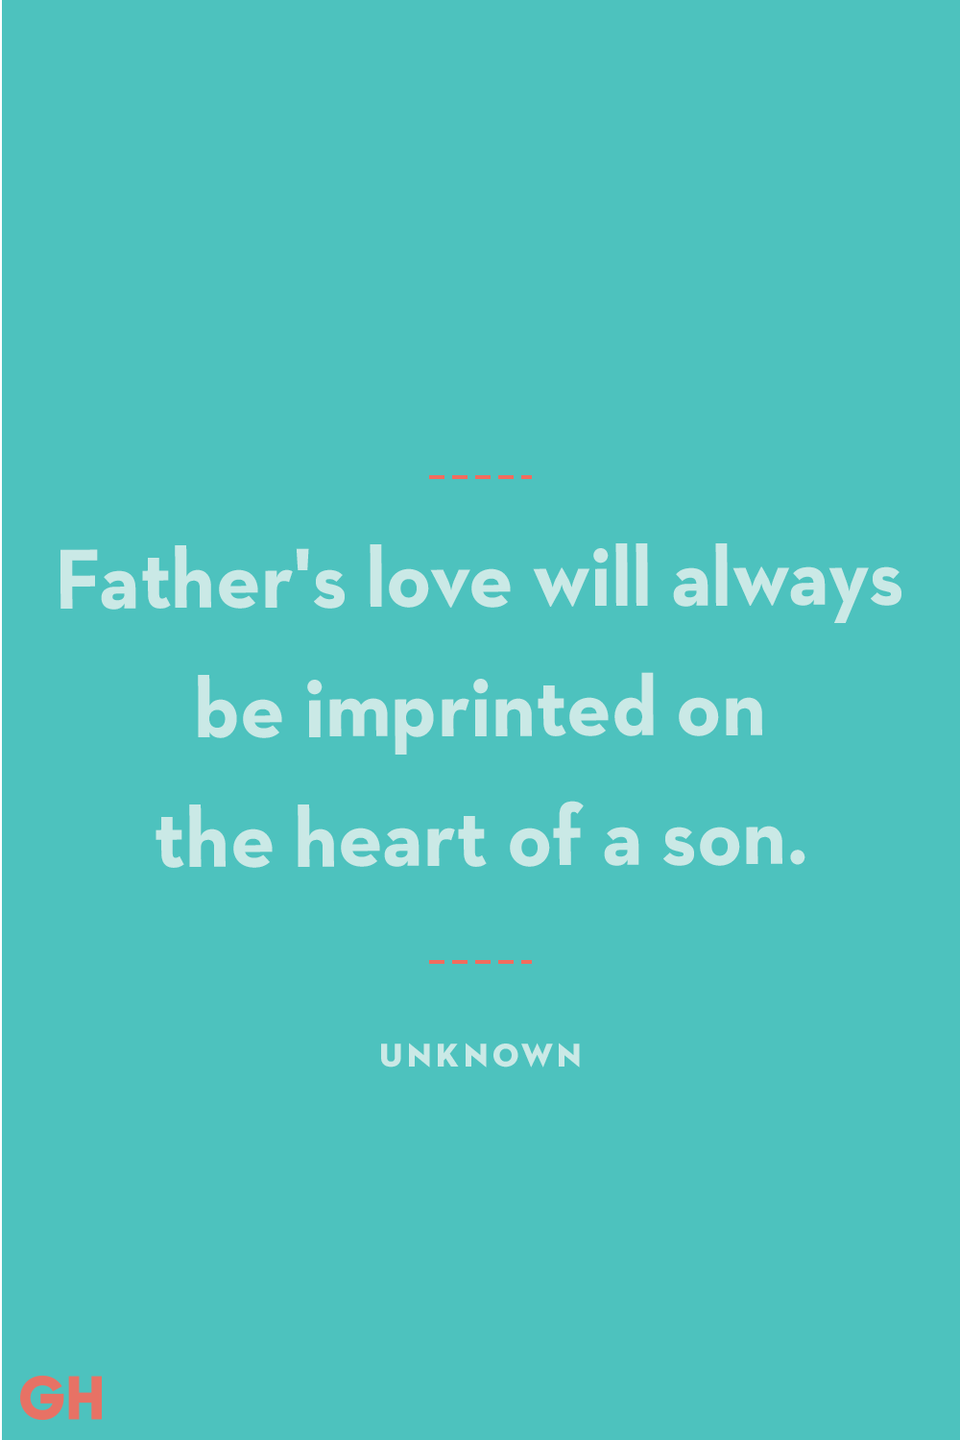 """<p>Father's love will always be imprinted on the heart of a son.</p><p><strong>RELATED:</strong> <a href=""""https://www.goodhousekeeping.com/holidays/fathers-day/g21205637/fathers-day-gifts-for-grandpa/"""" rel=""""nofollow noopener"""" target=""""_blank"""" data-ylk=""""slk:15 Father's Day Gifts That'll Warm Grandpa's Heart"""" class=""""link rapid-noclick-resp"""">15 Father's Day Gifts That'll Warm Grandpa's Heart</a></p>"""